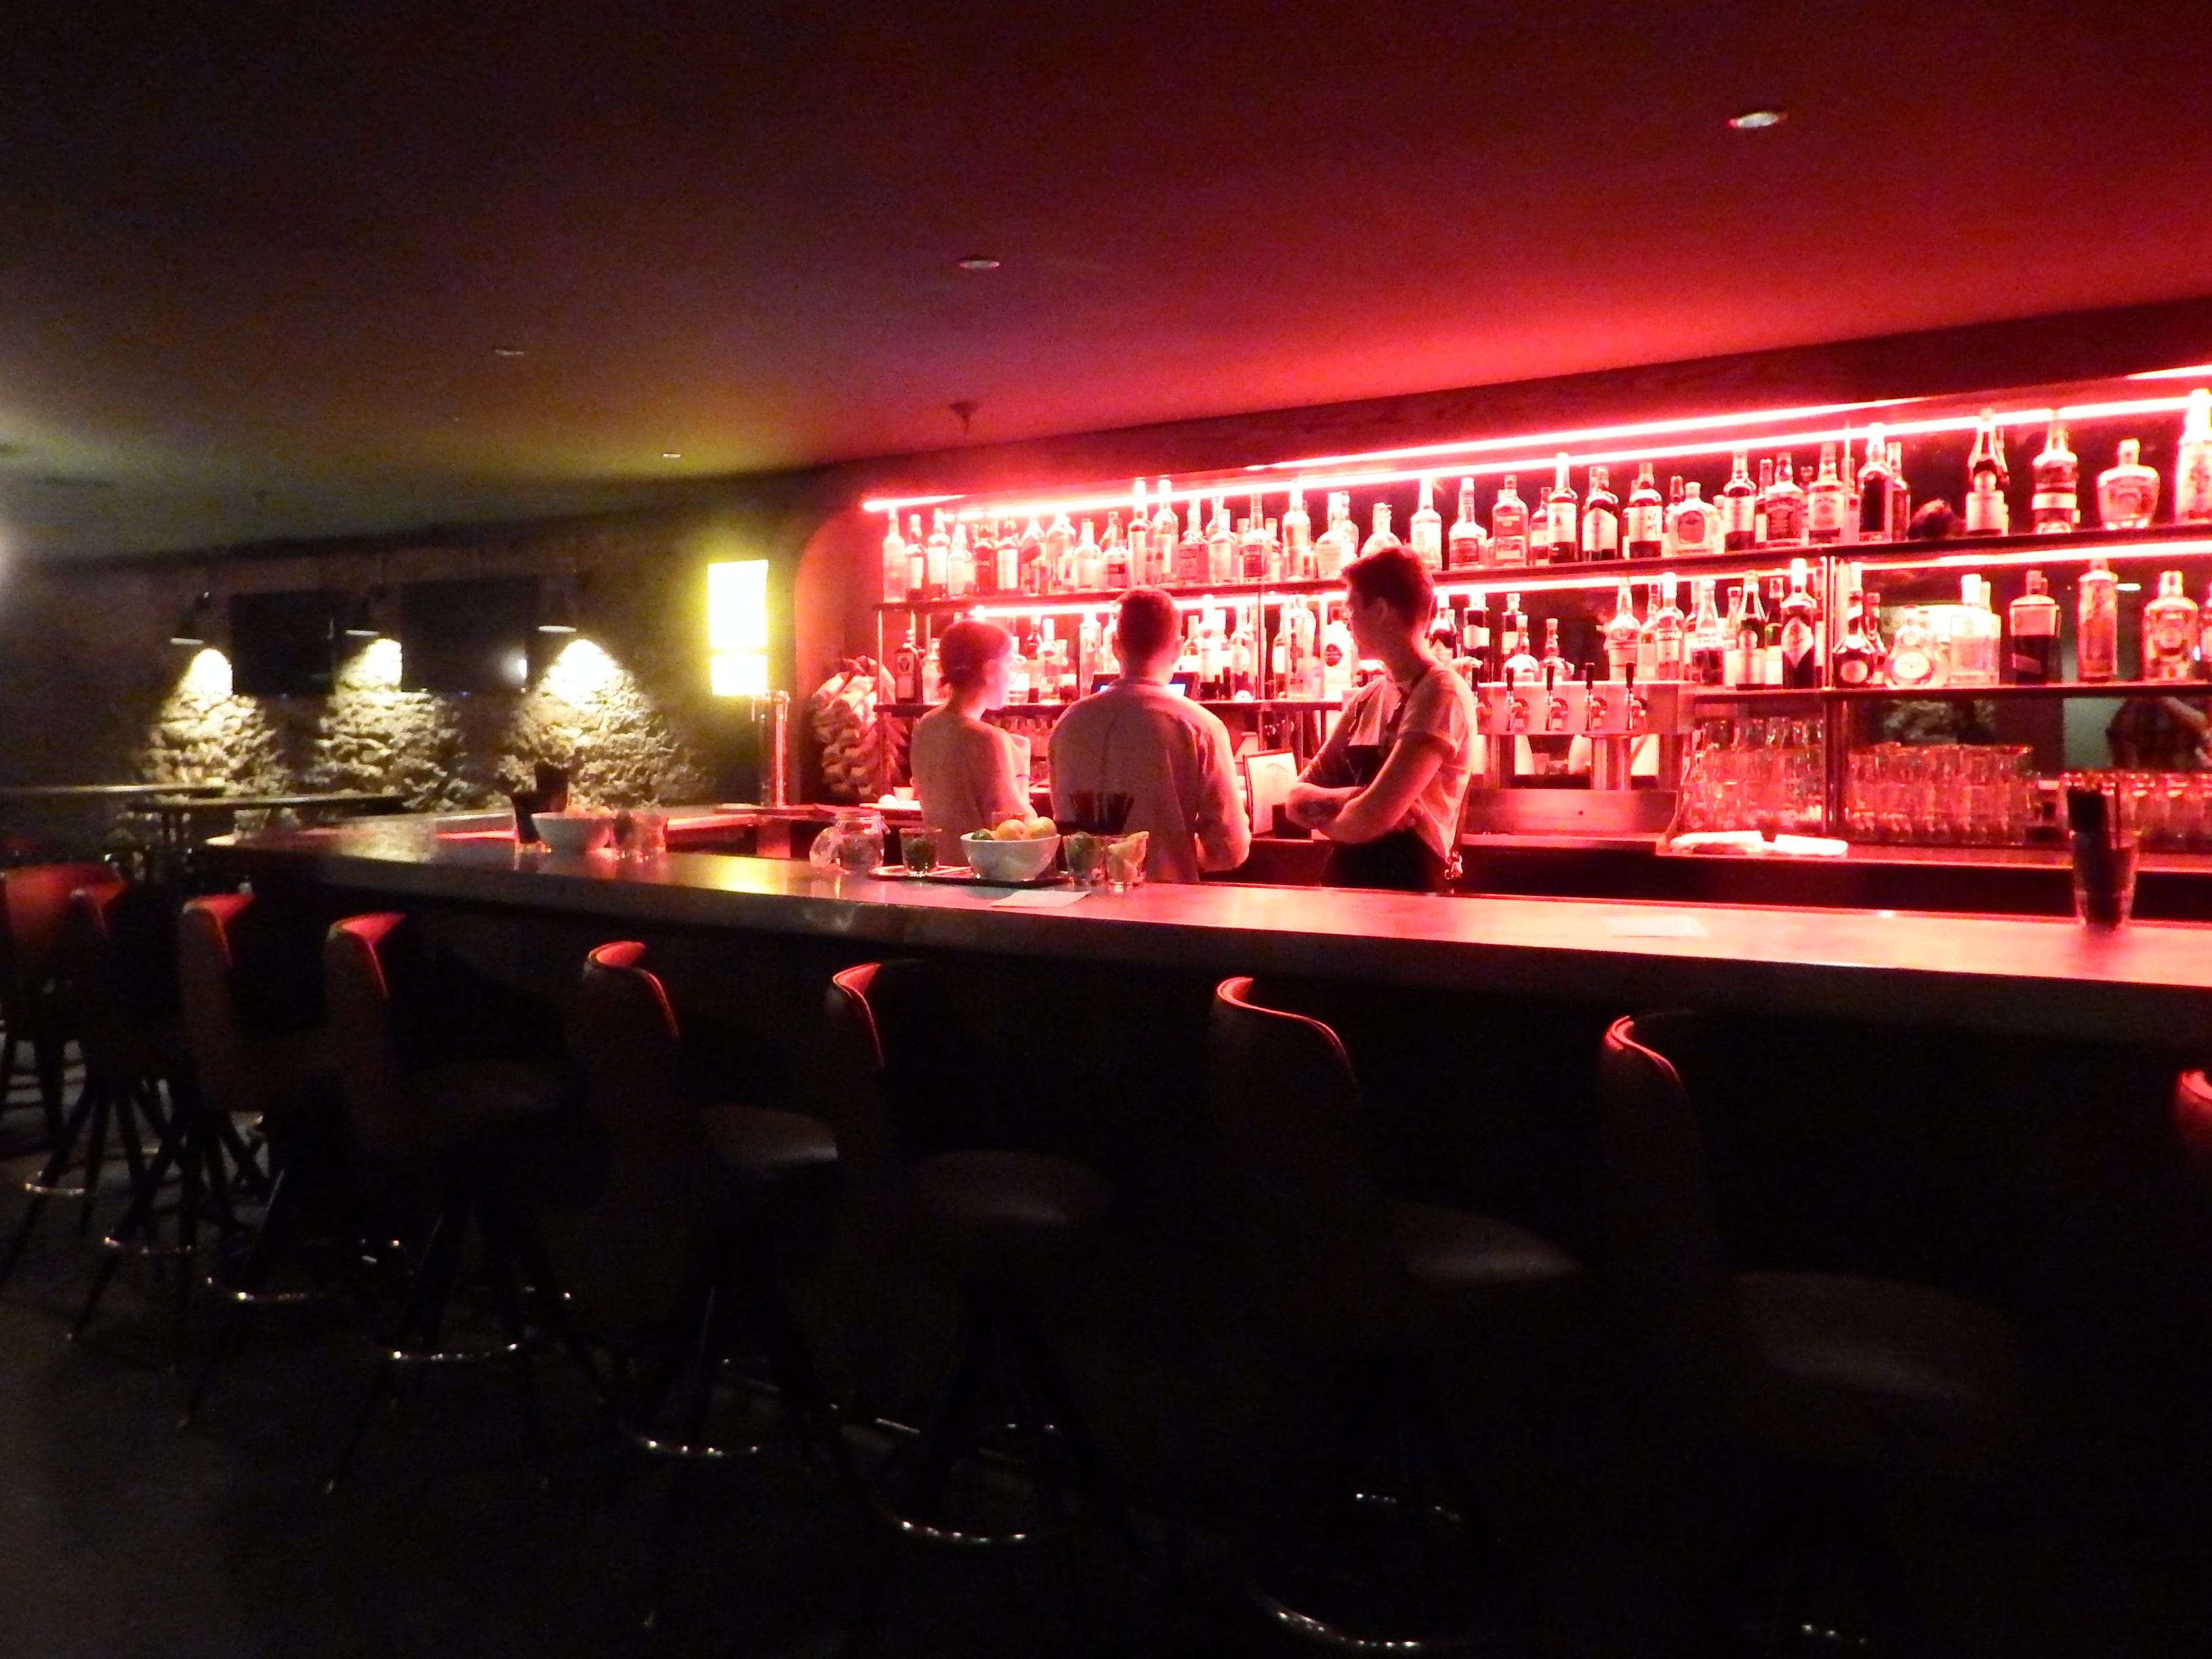 The Bar In The Basement Of St. Burch Tavern Is Shown